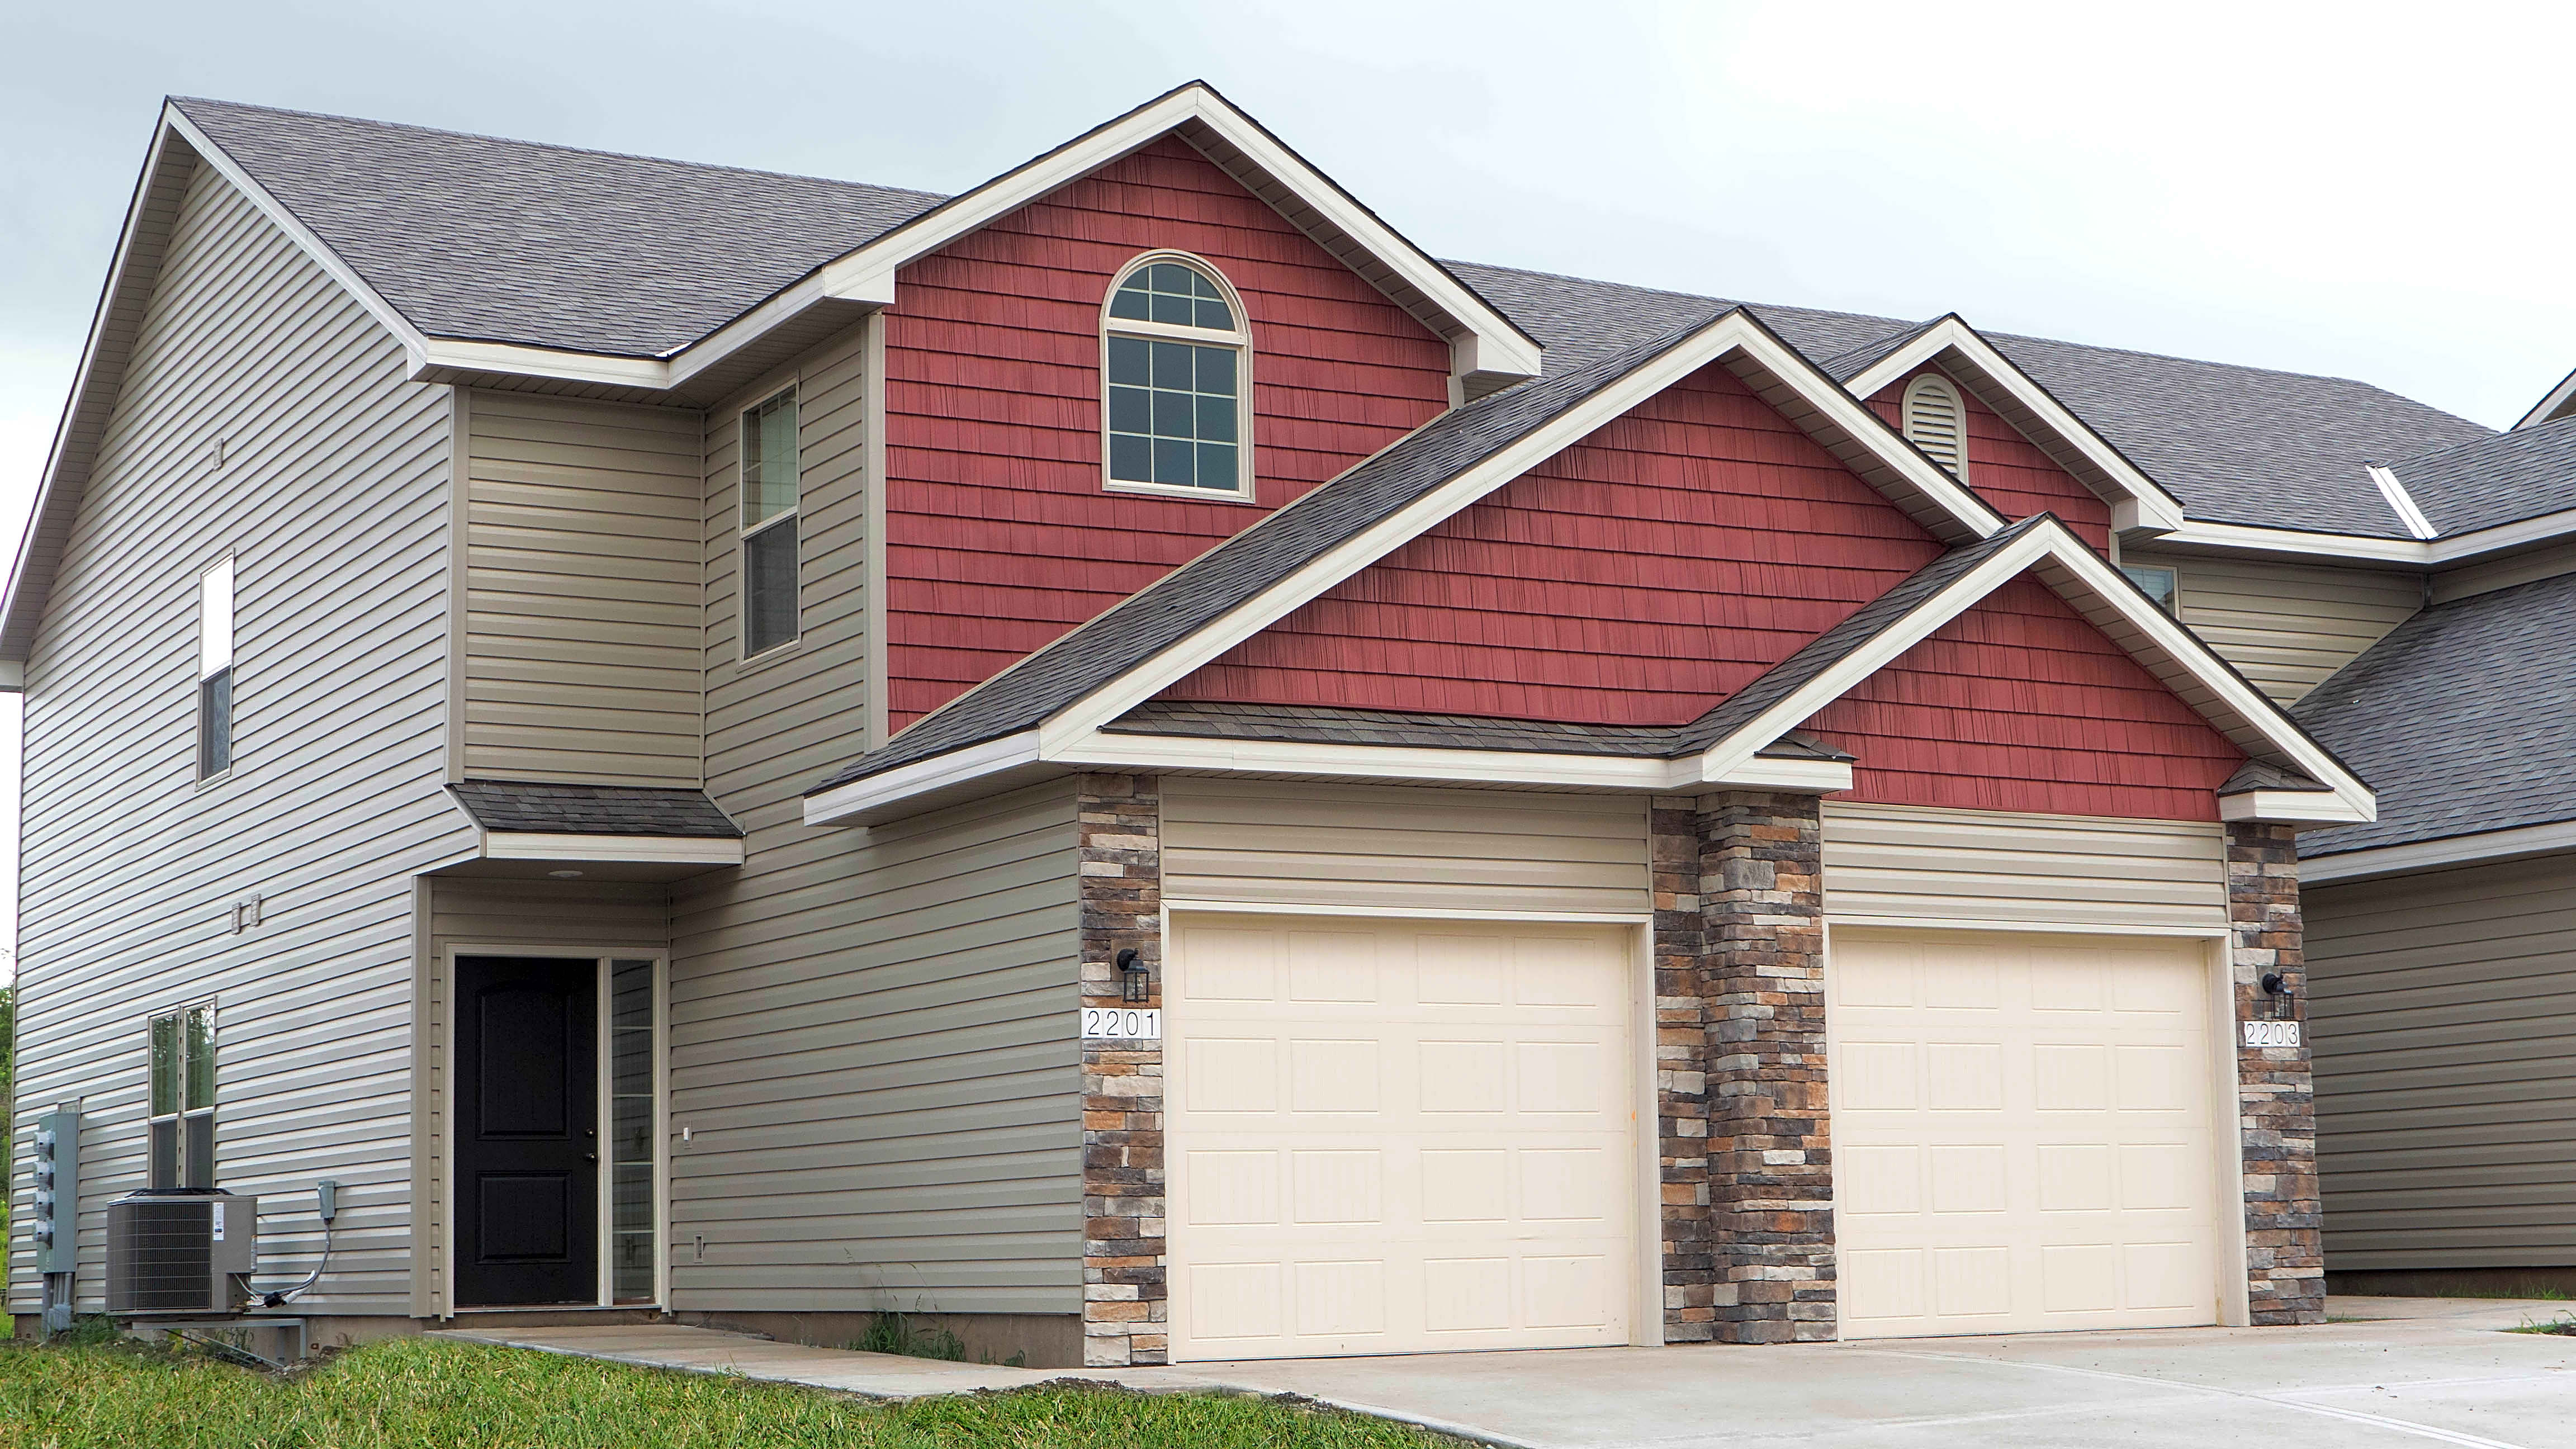 Condo for Rent in Lees Summit